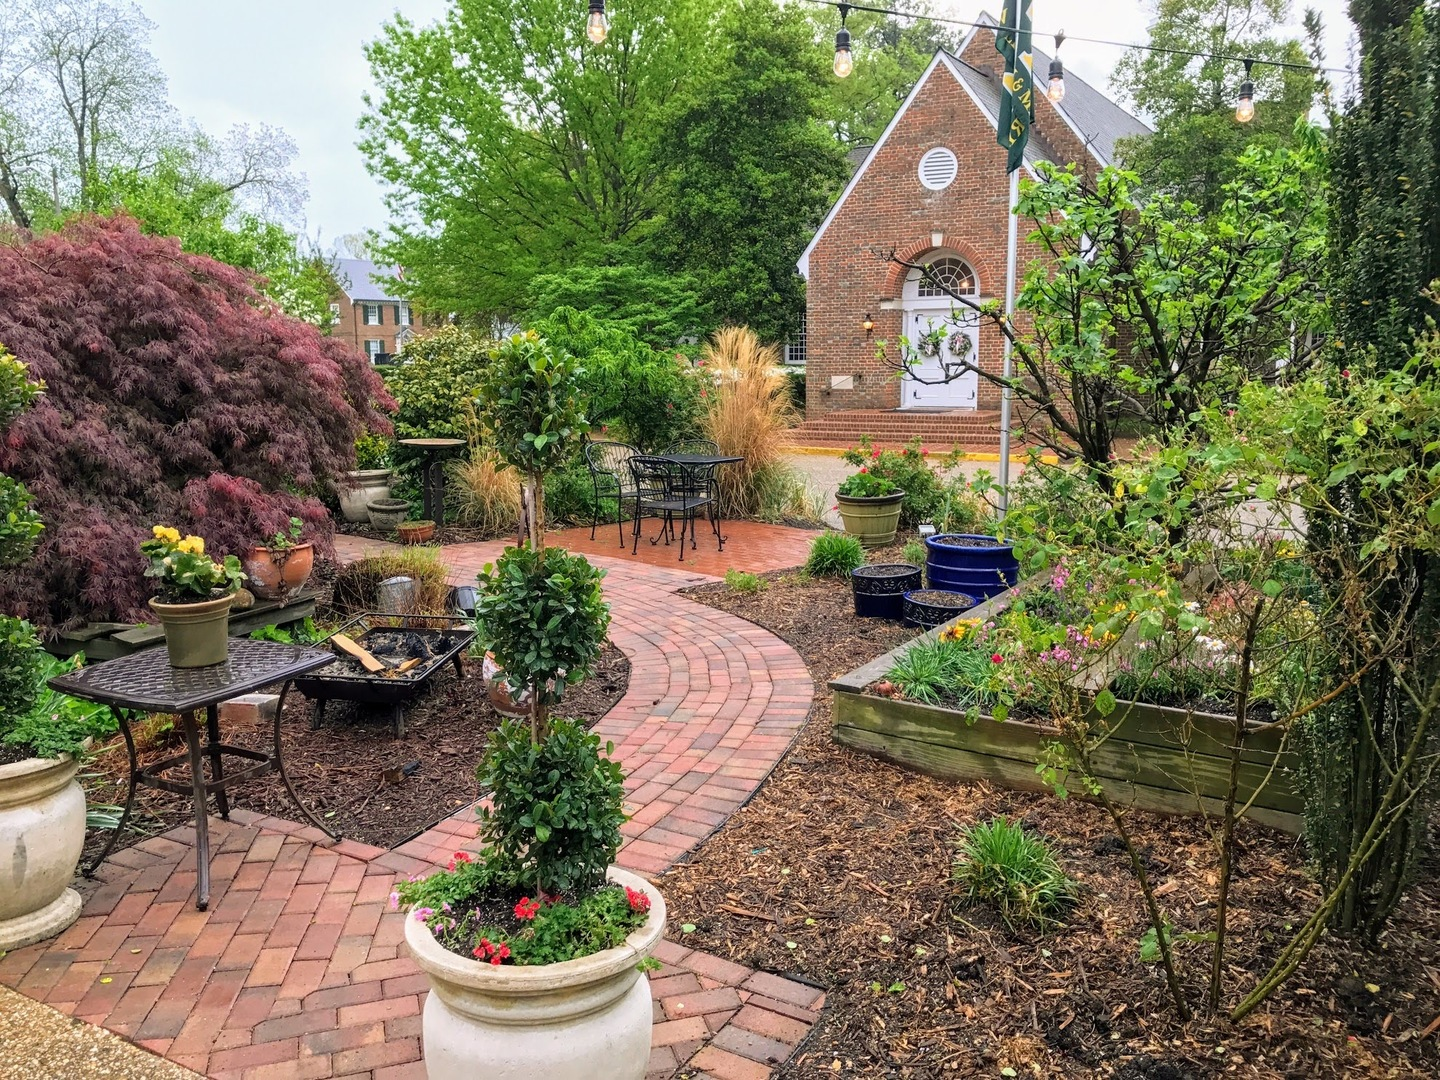 A garden in front of a house at Williamsburg Manor Bed & Breakfast.